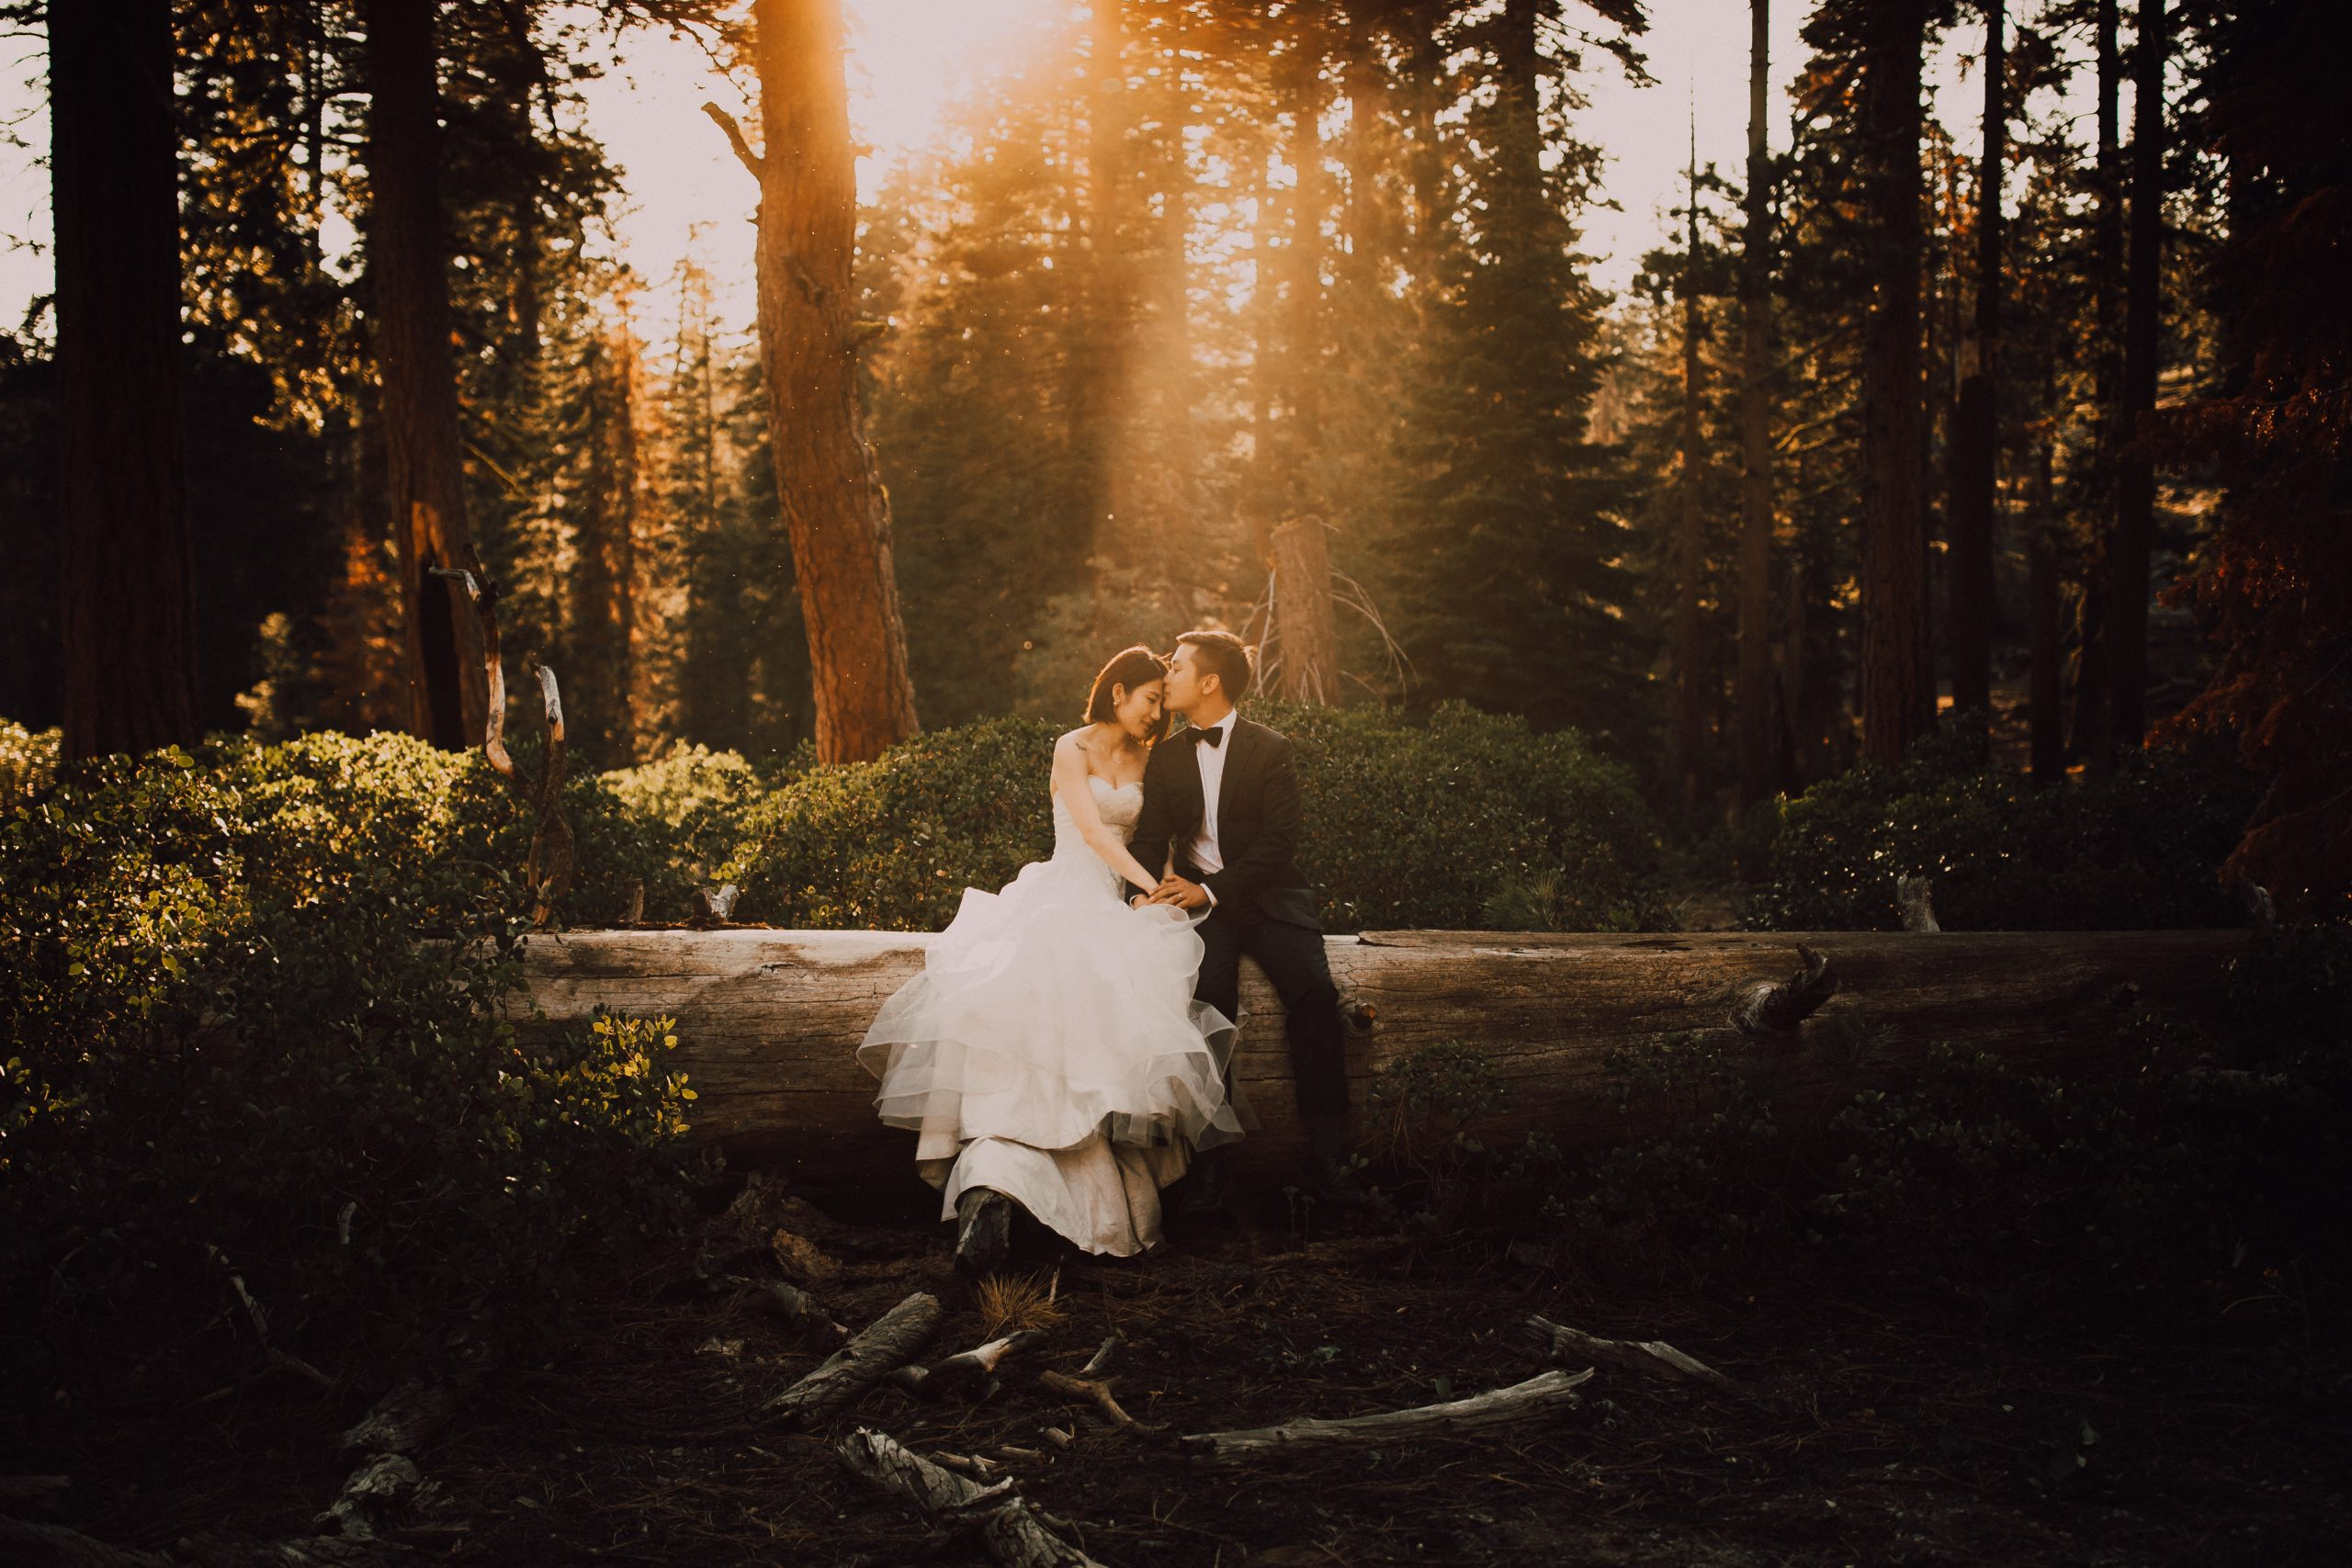 Lightroom Film Presets - C & A Presets by Cody & Allison